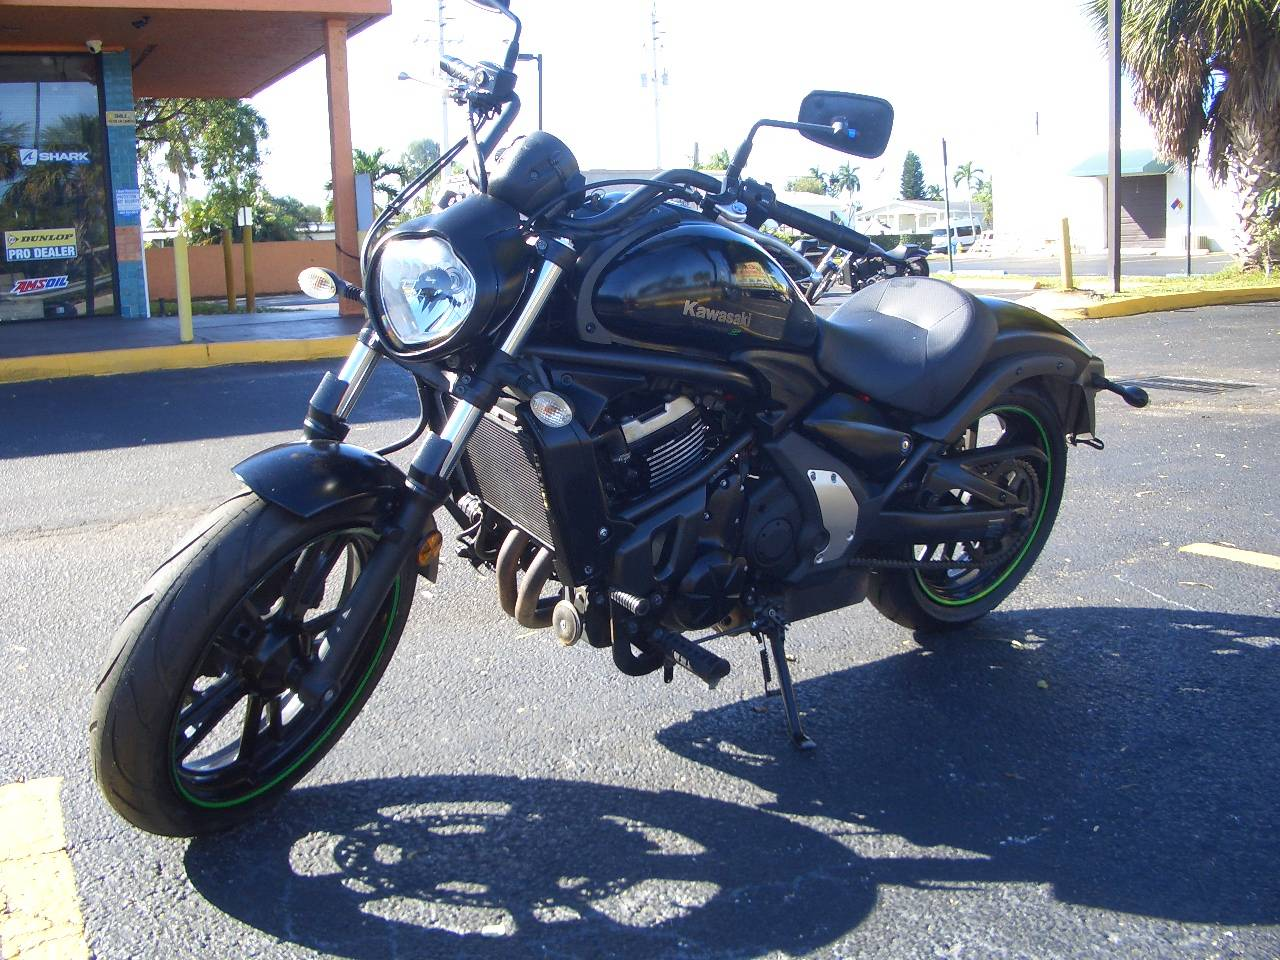 2015 Kawasaki Vulcan® S in Fort Lauderdale, Florida - Photo 2